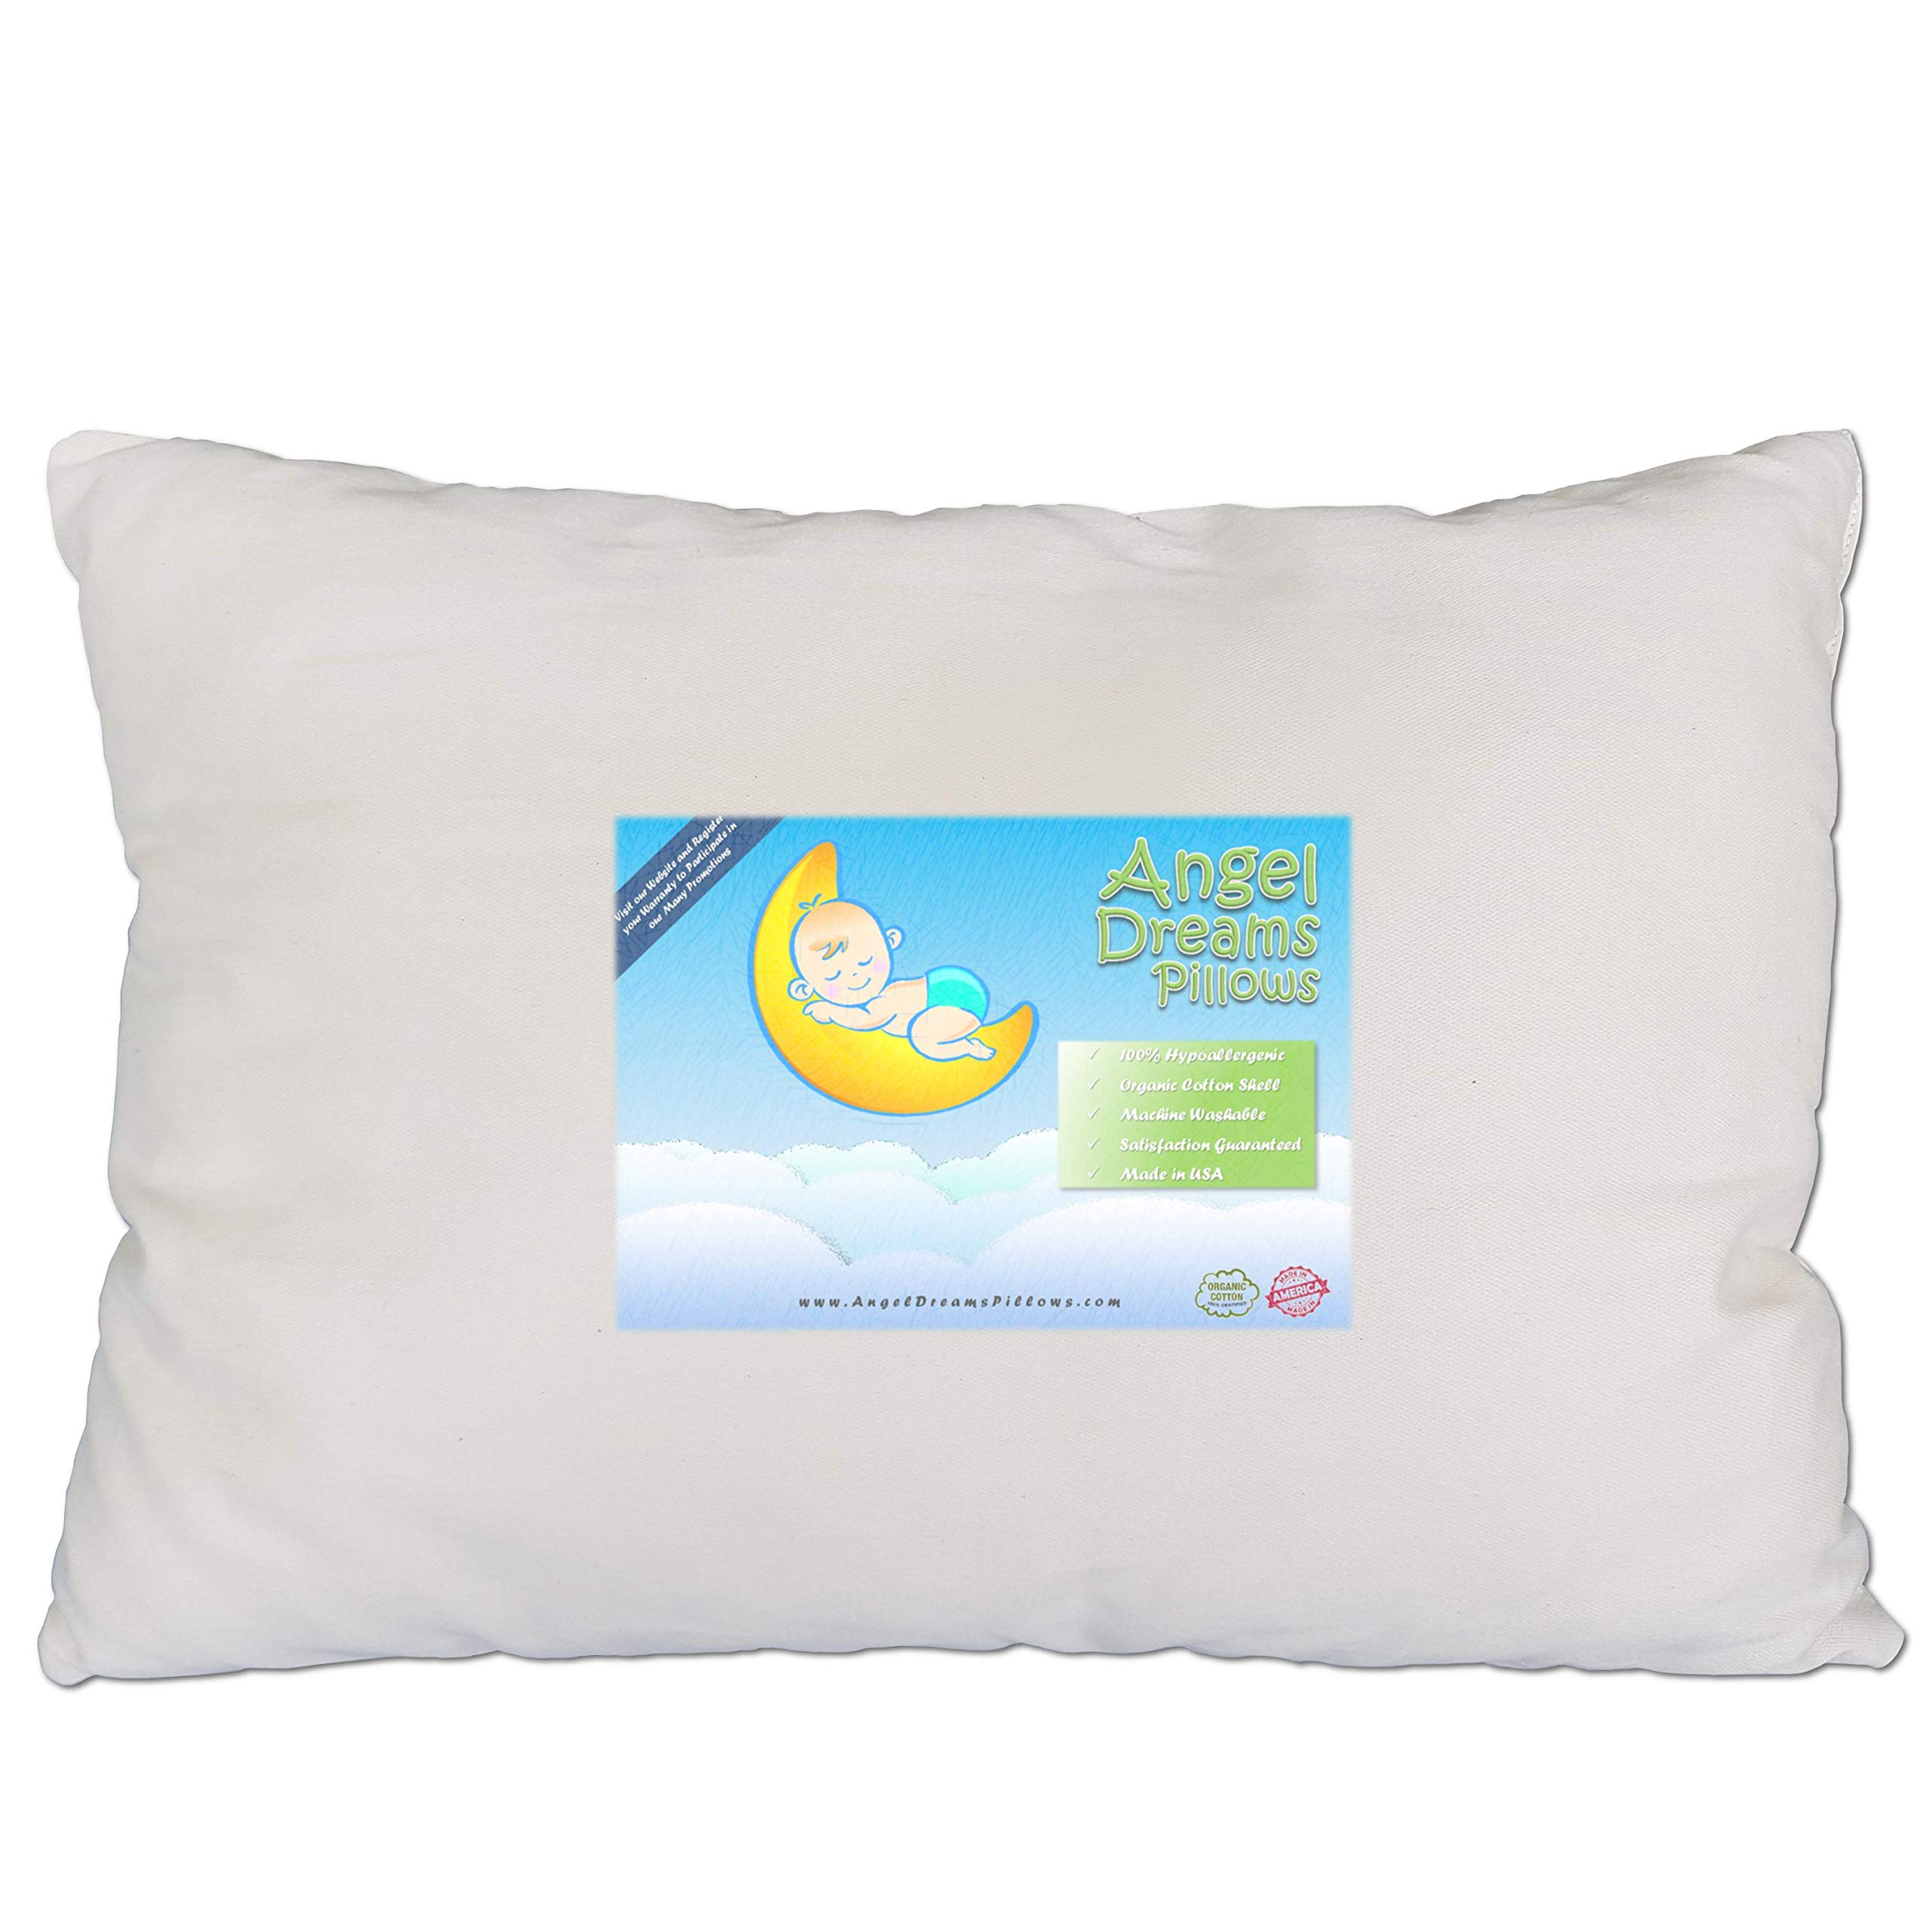 Toddler Pillow - Organic Cotton Made in USA, 13x18 Washable Unisex Kids Pillow